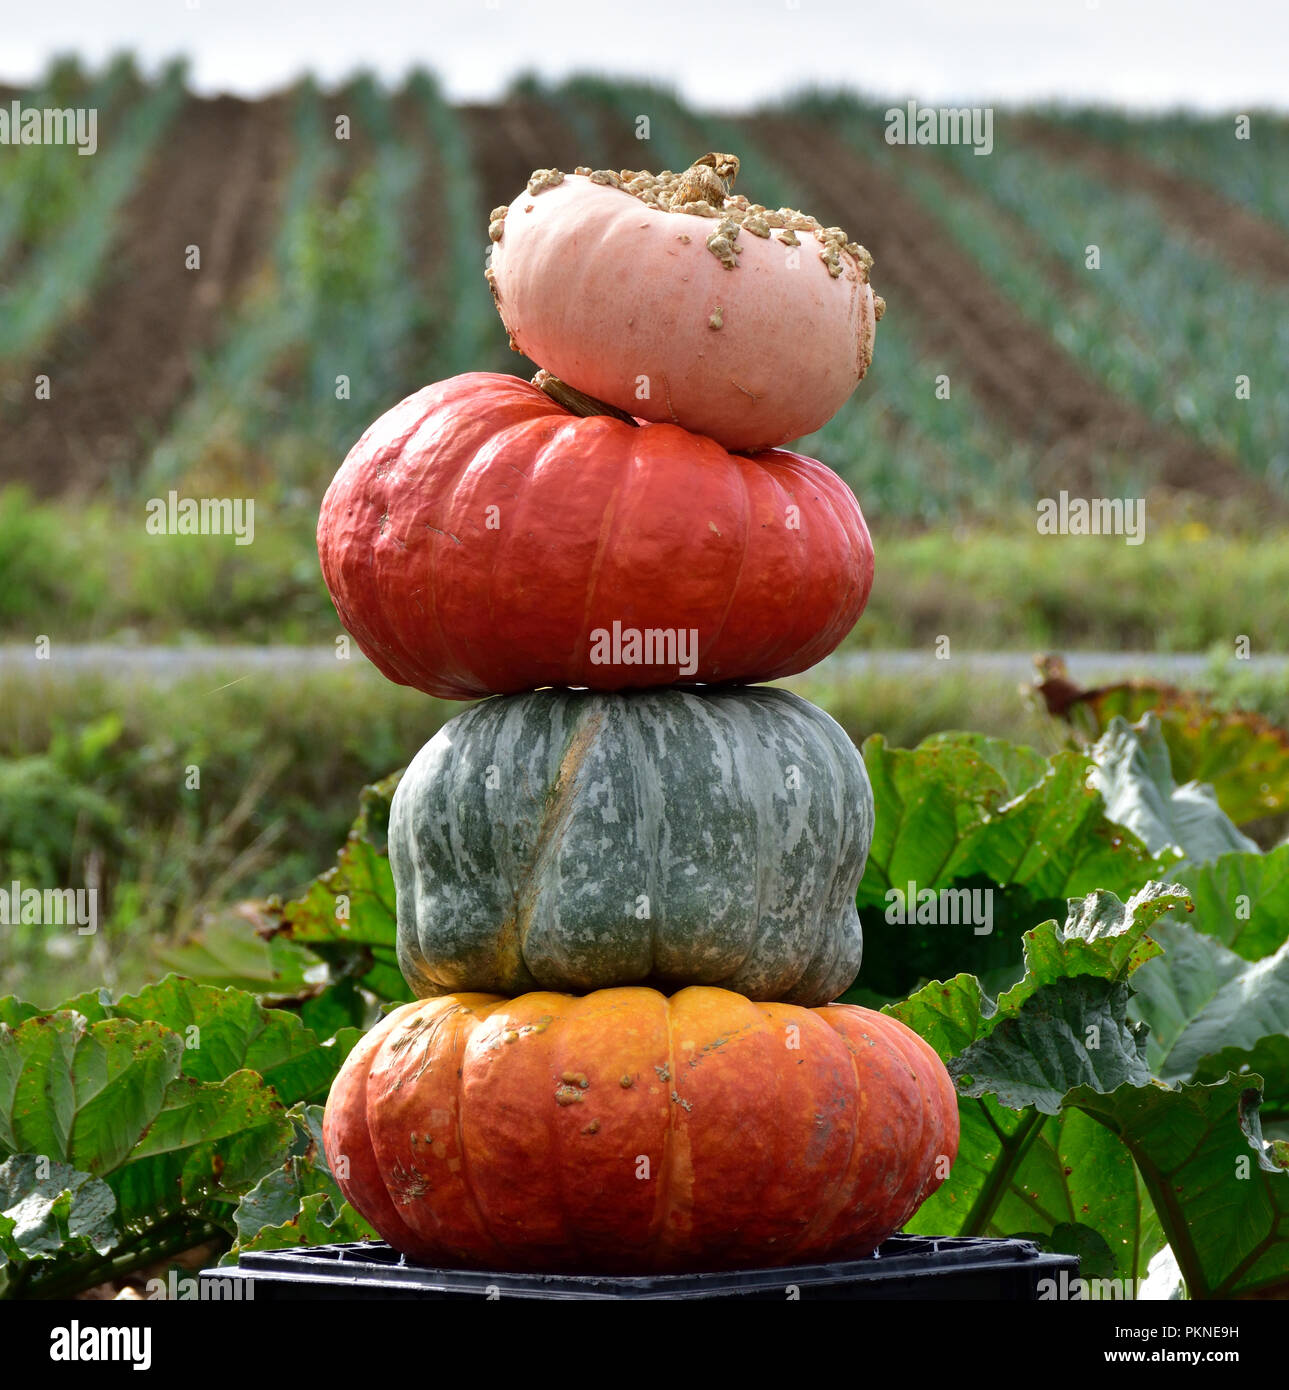 Pumpkins and squash from an early fall harvest on the Saanich Peninsula. - Stock Image